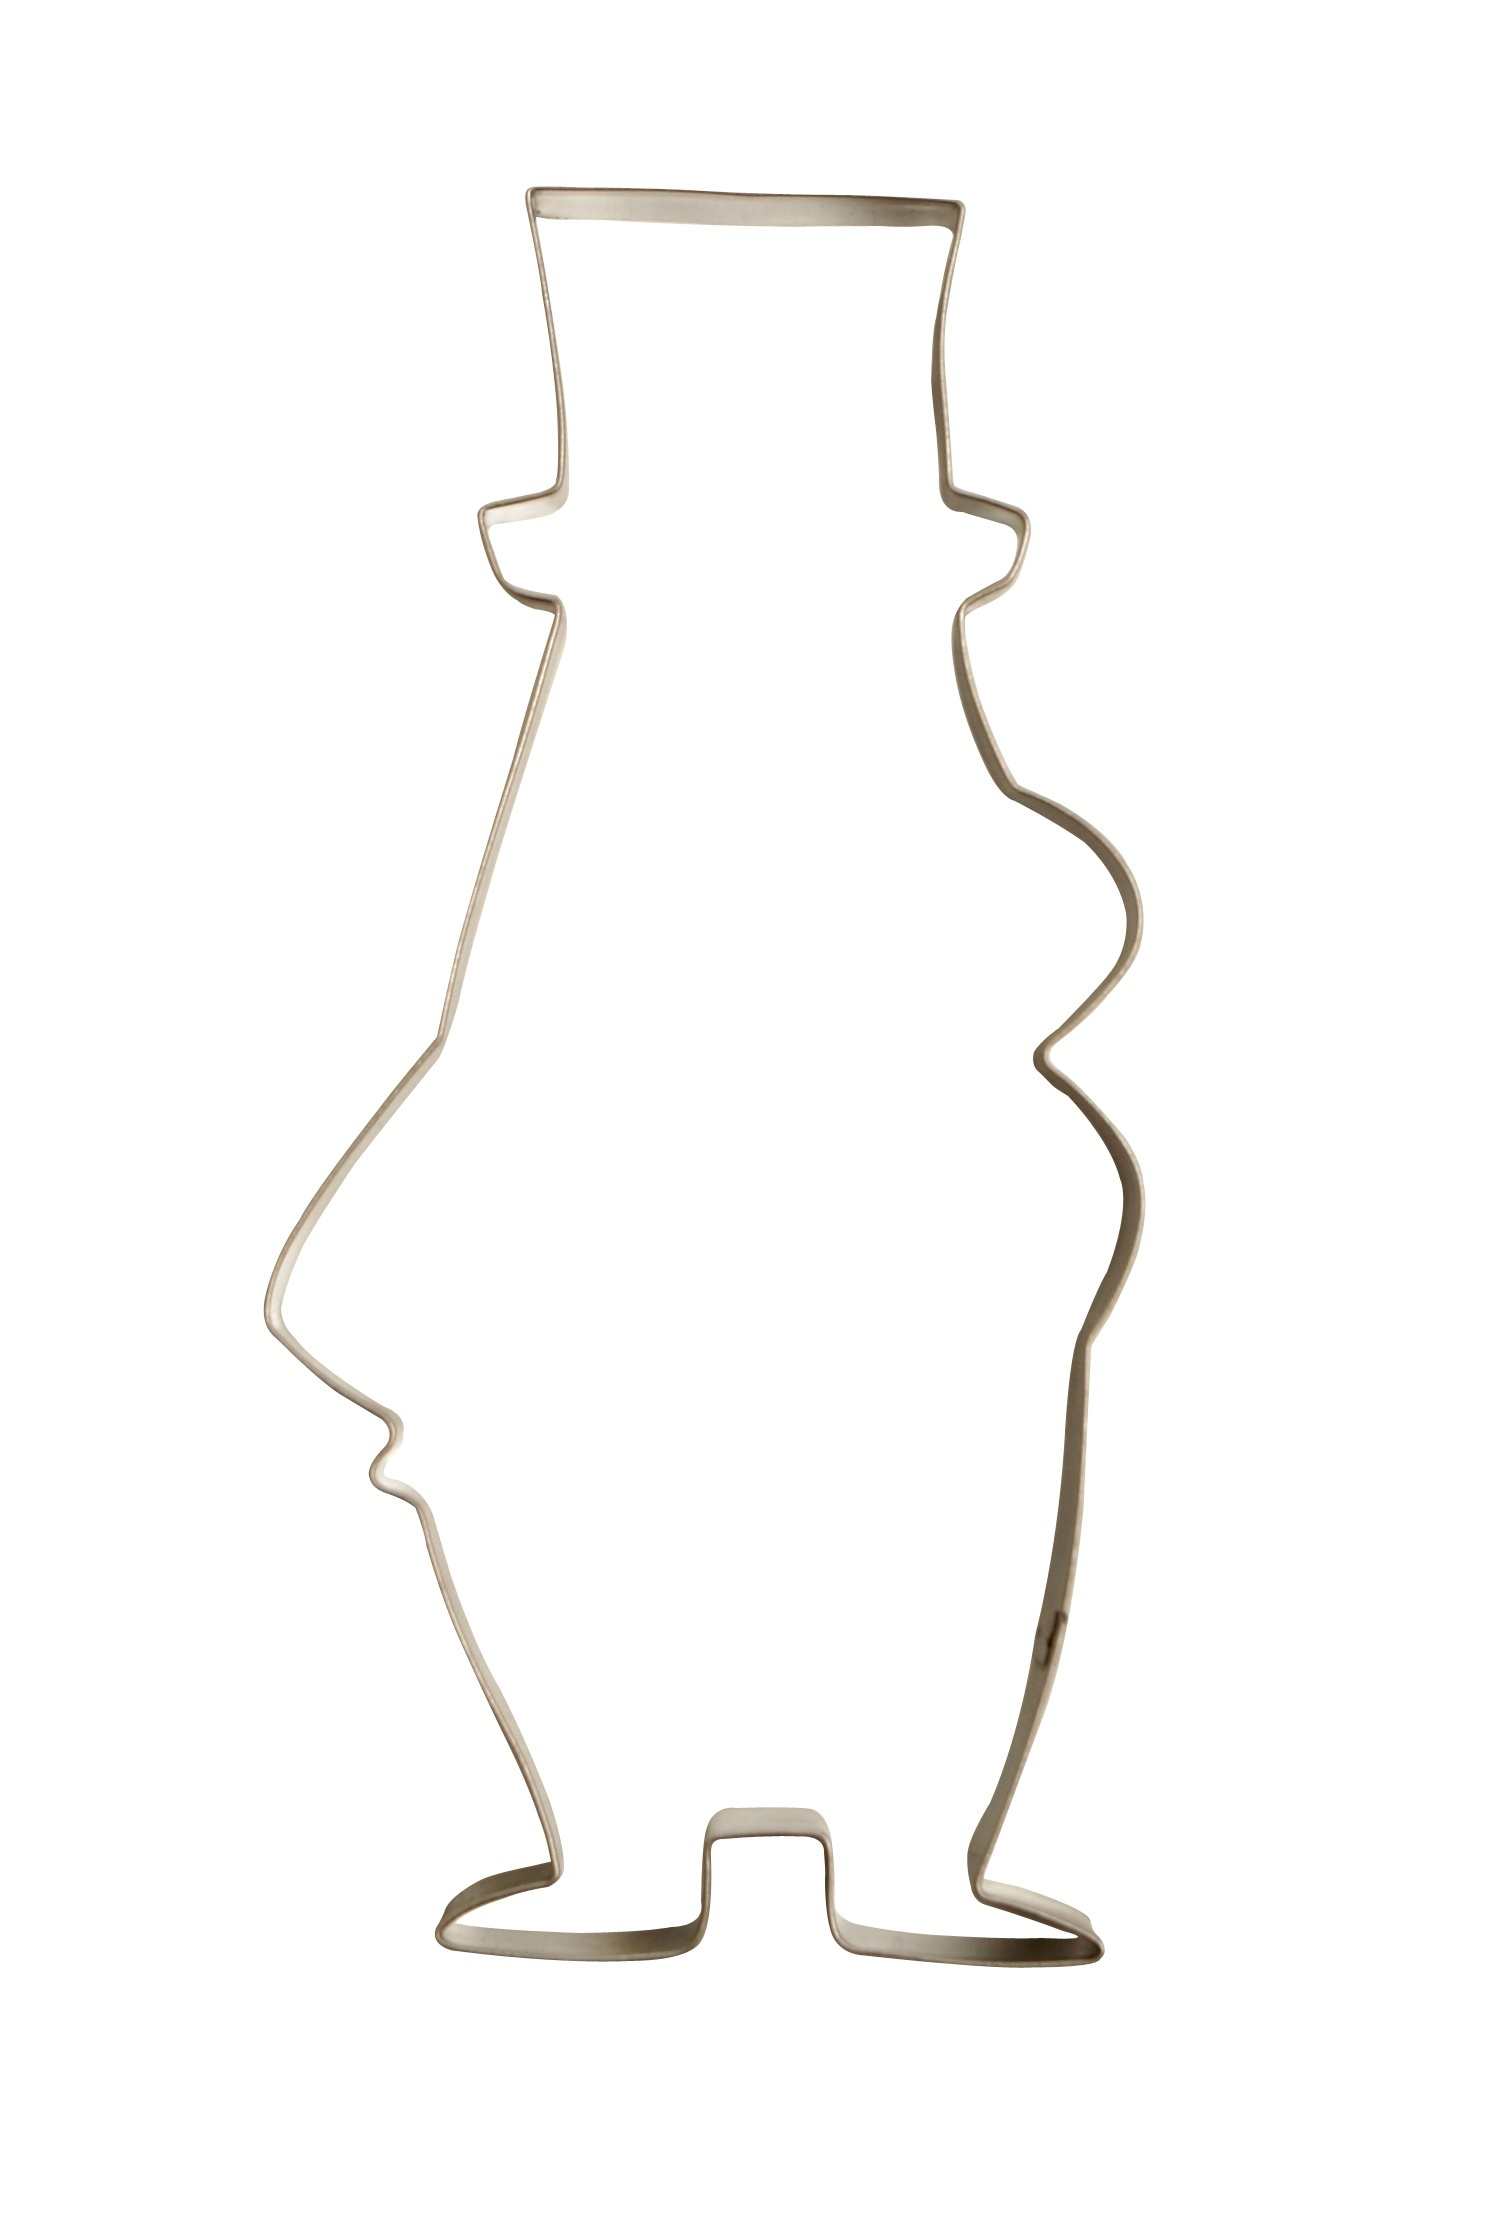 Martinex Moominpappa Cookie Cutter